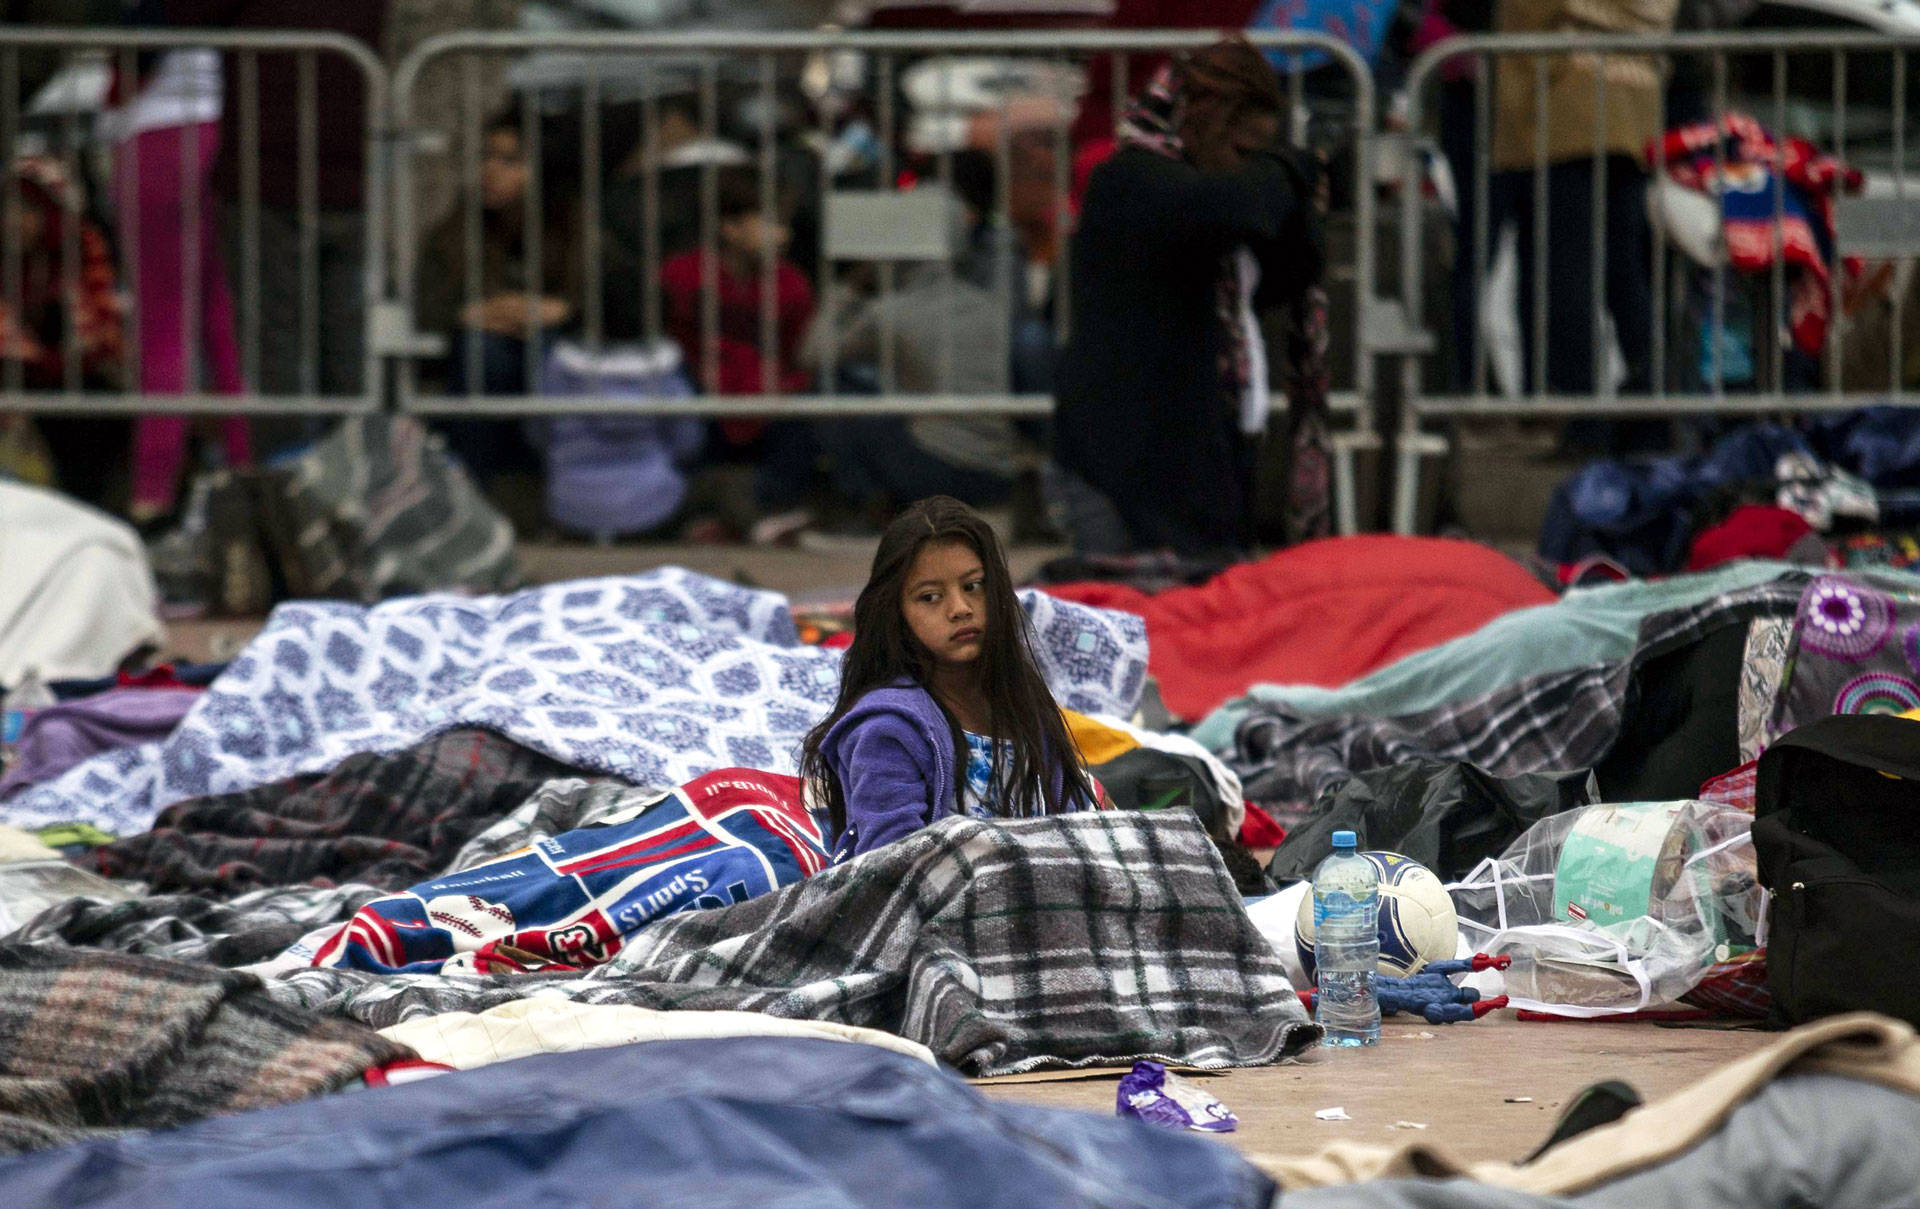 Central American migrants traveling in the 'Migrant Via Crucis' caravan sleep outside 'El Chaparral' port of entry to the U.S. while waiting to be received by U.S. authorities, in Tijuana, Mexico on April 30, 2018. GUILLERMO ARIAS/AFP/Getty Images